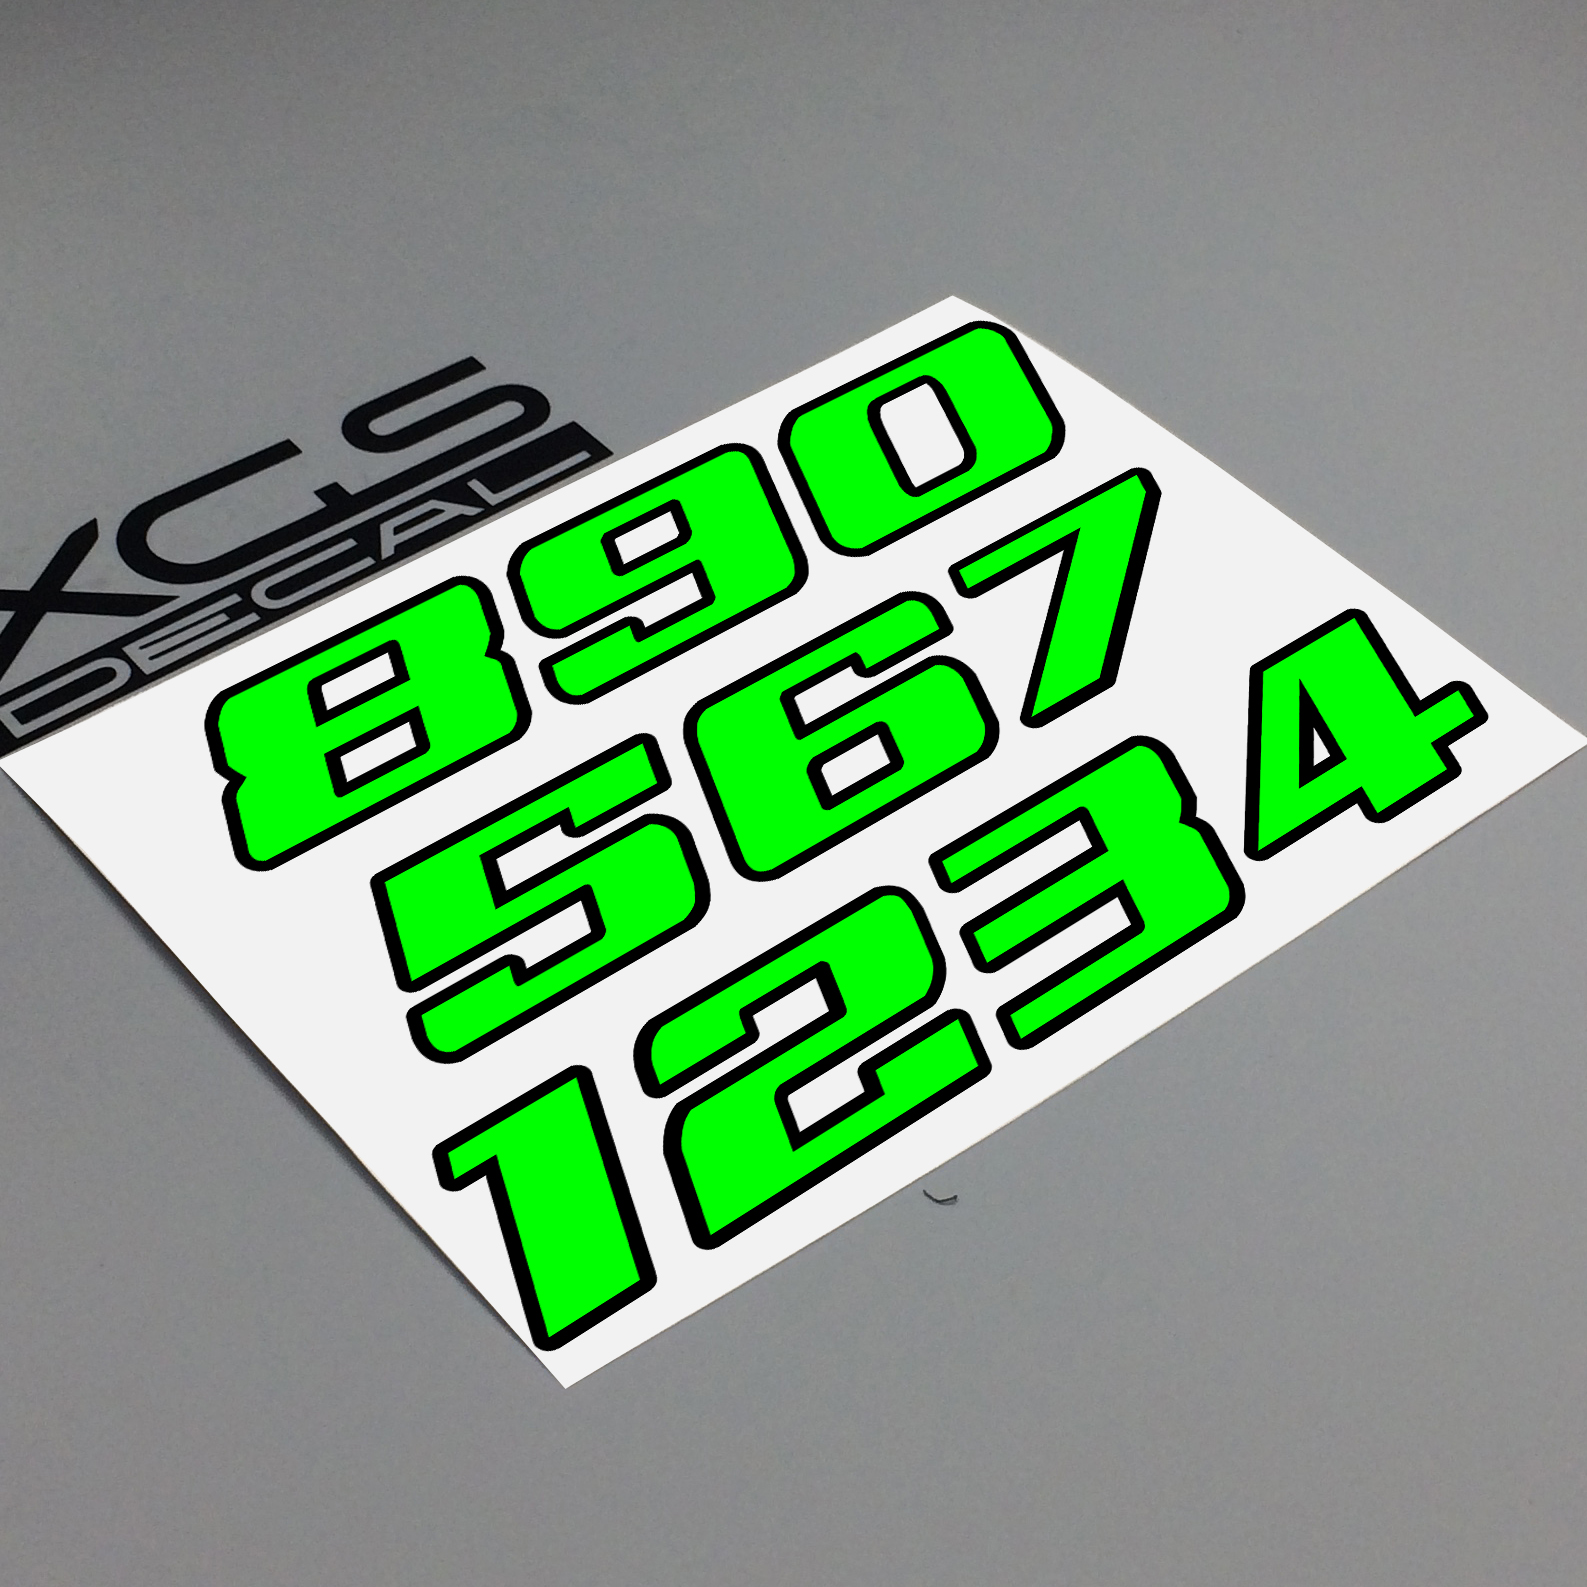 XGS DECAL Car Sticker Number Neon Fluorescent Double Layer Vinyl Cut Motorcycle ATV Helmet Sticker  Outdoor Decal